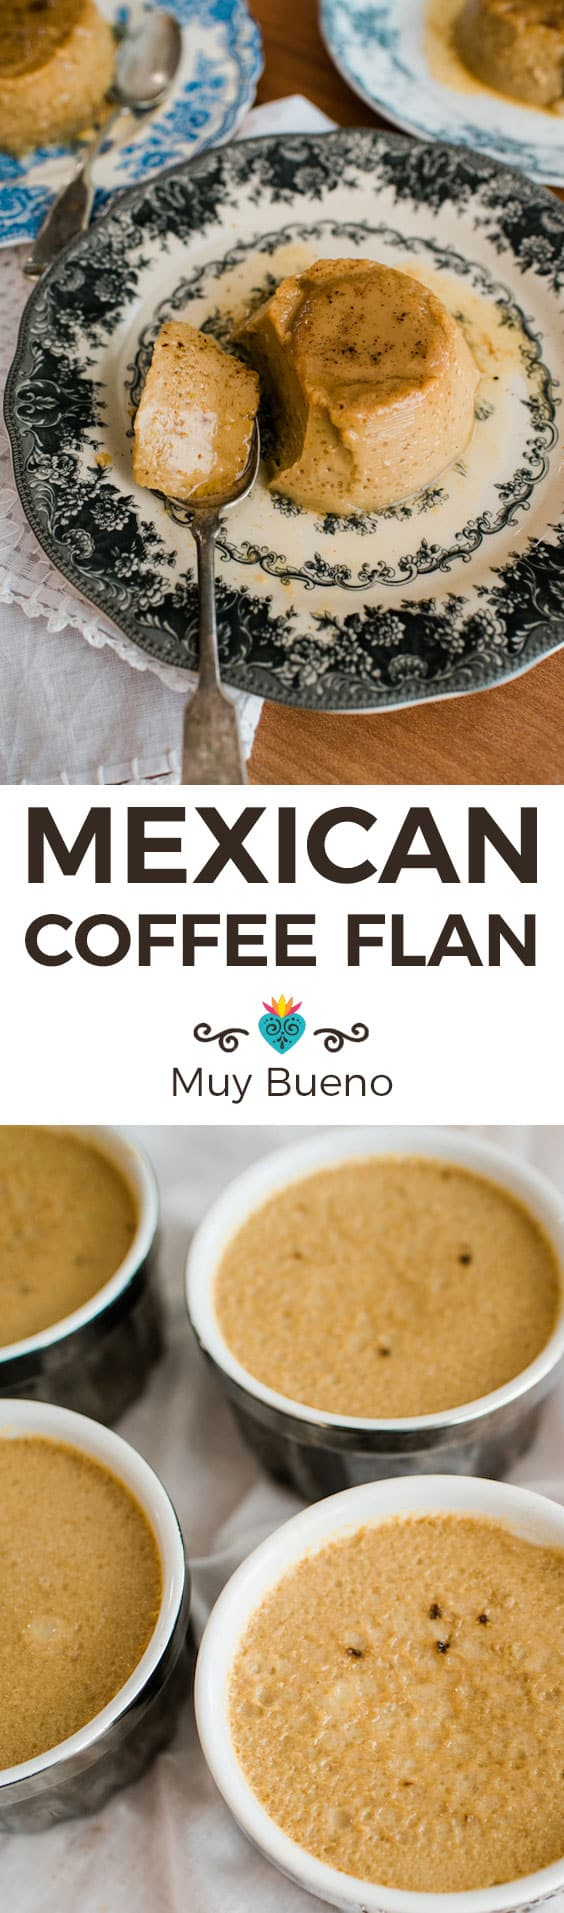 Mexican Coffee Flan collage with text overlay